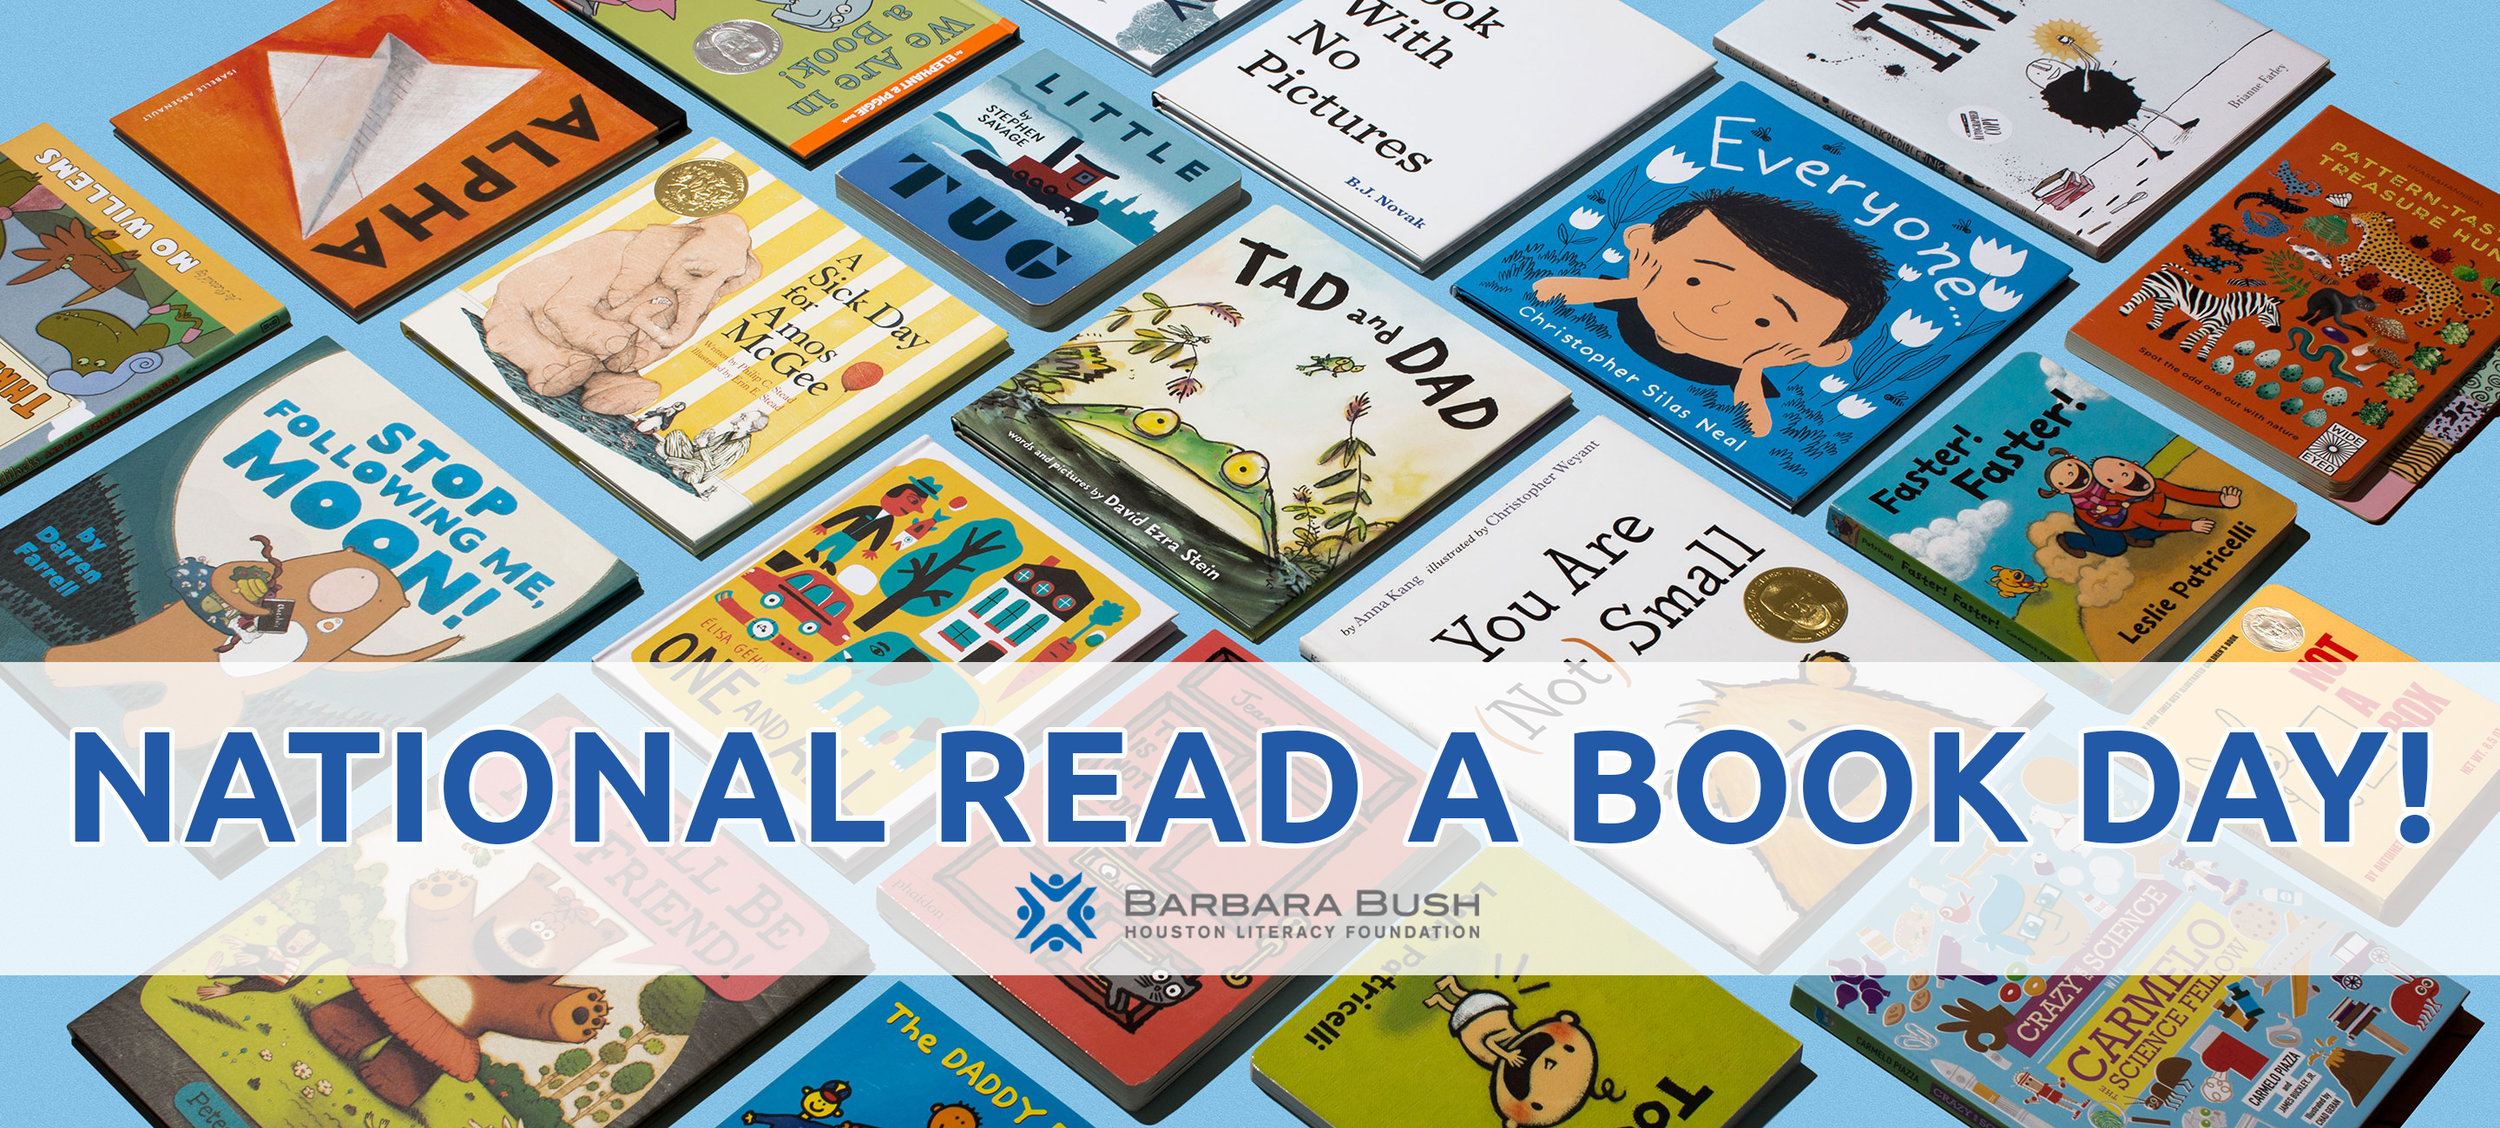 National Read a Book Day.jpg